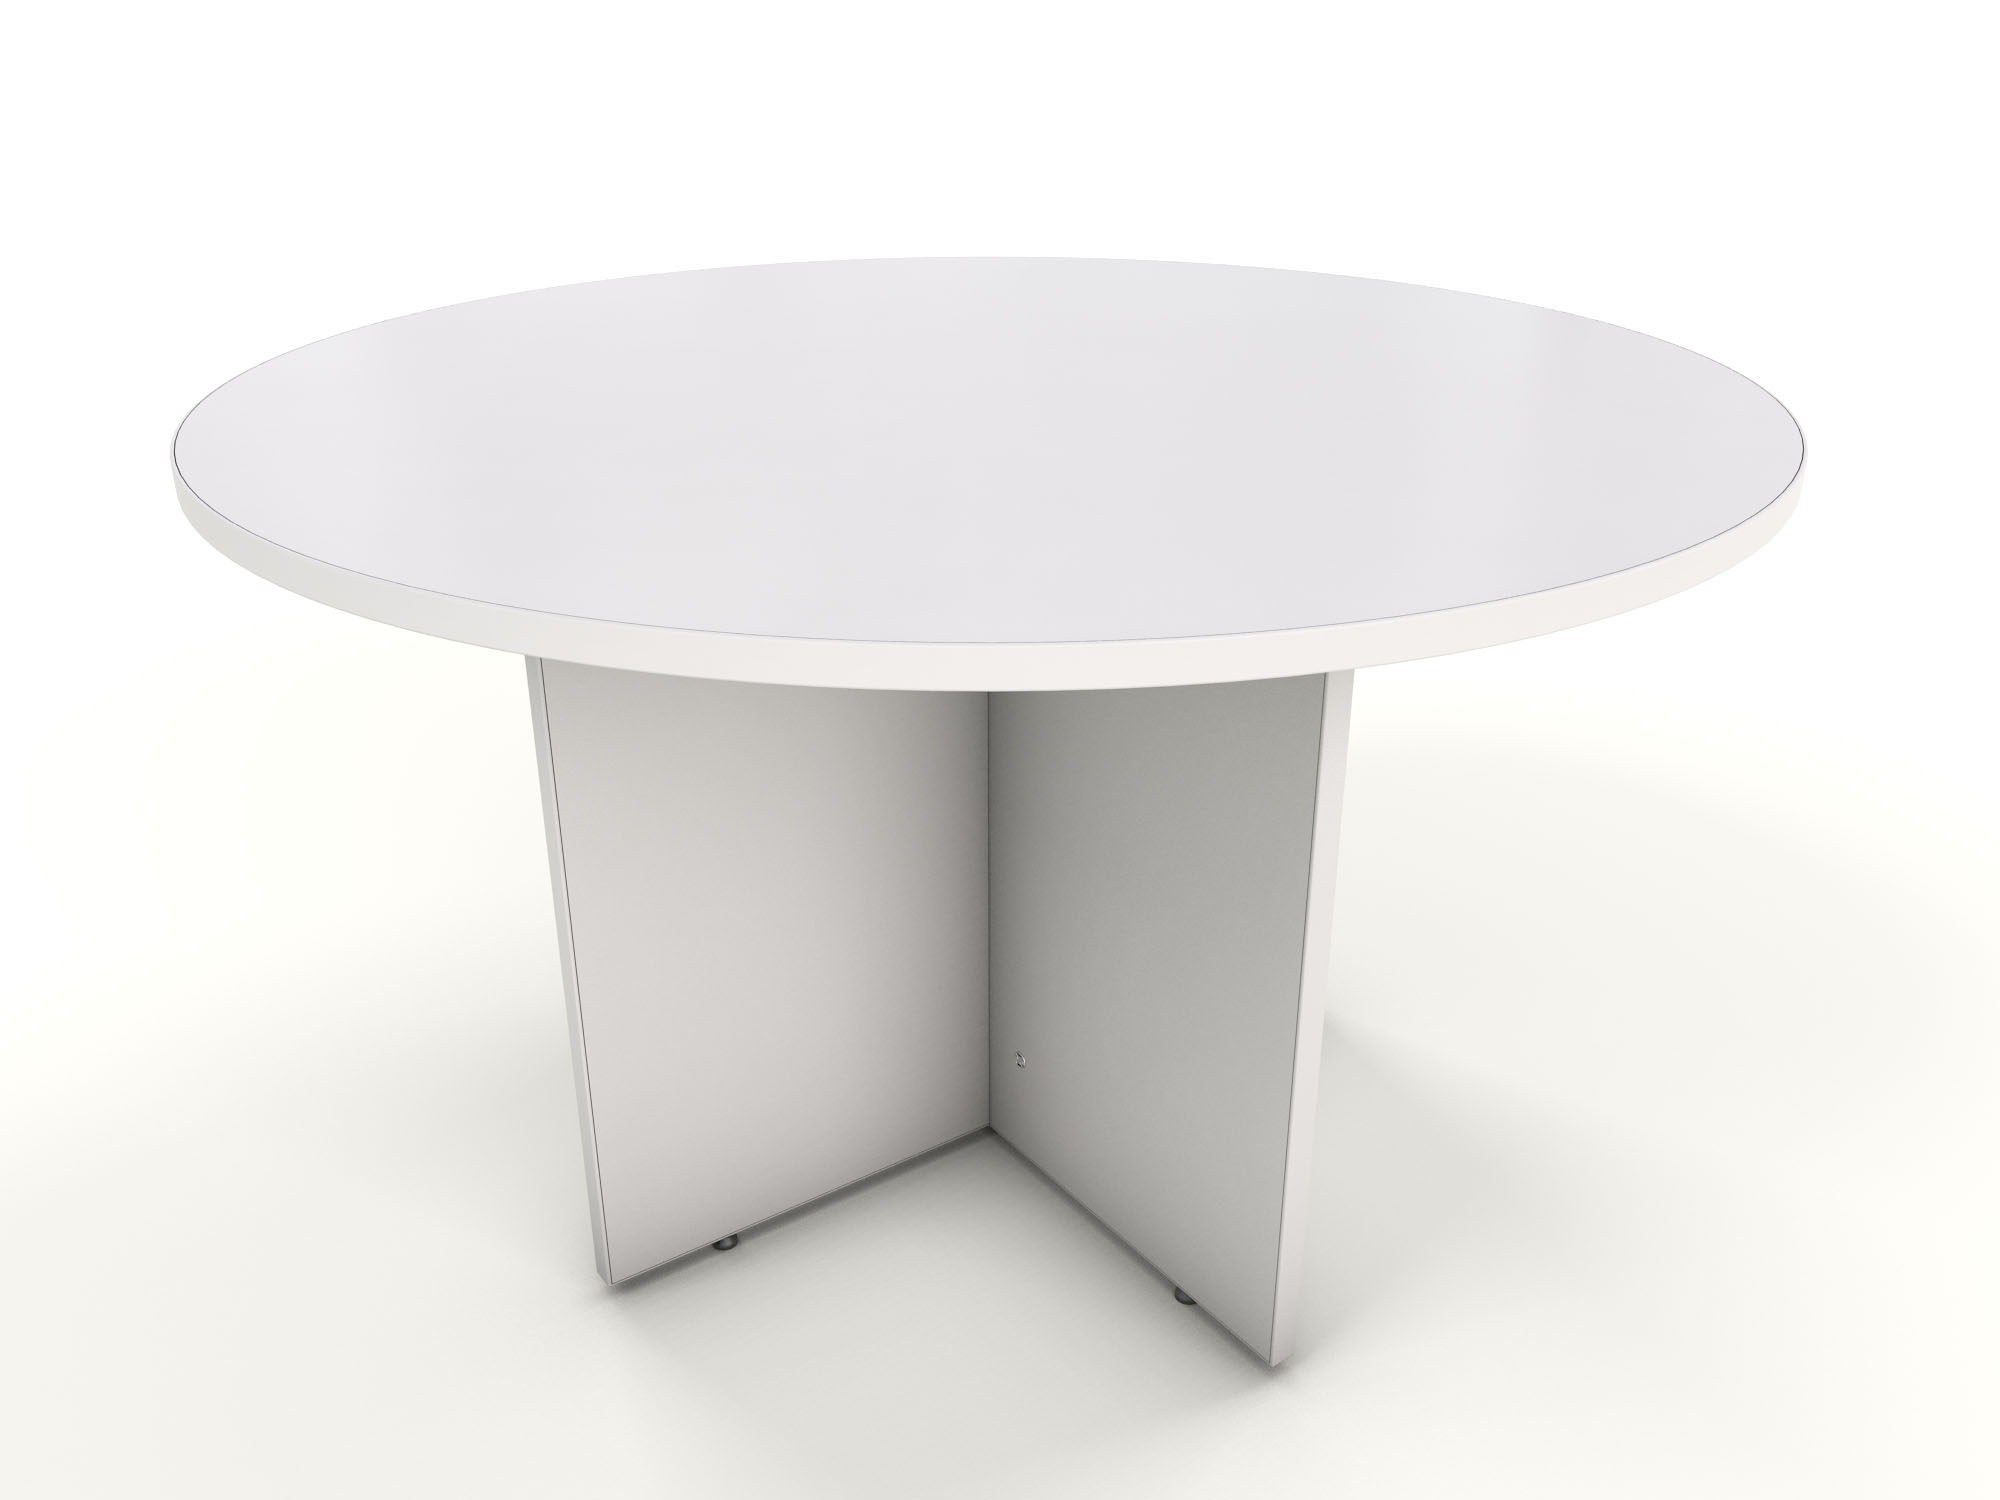 White round meeting table icarus office furniture for Off white round table